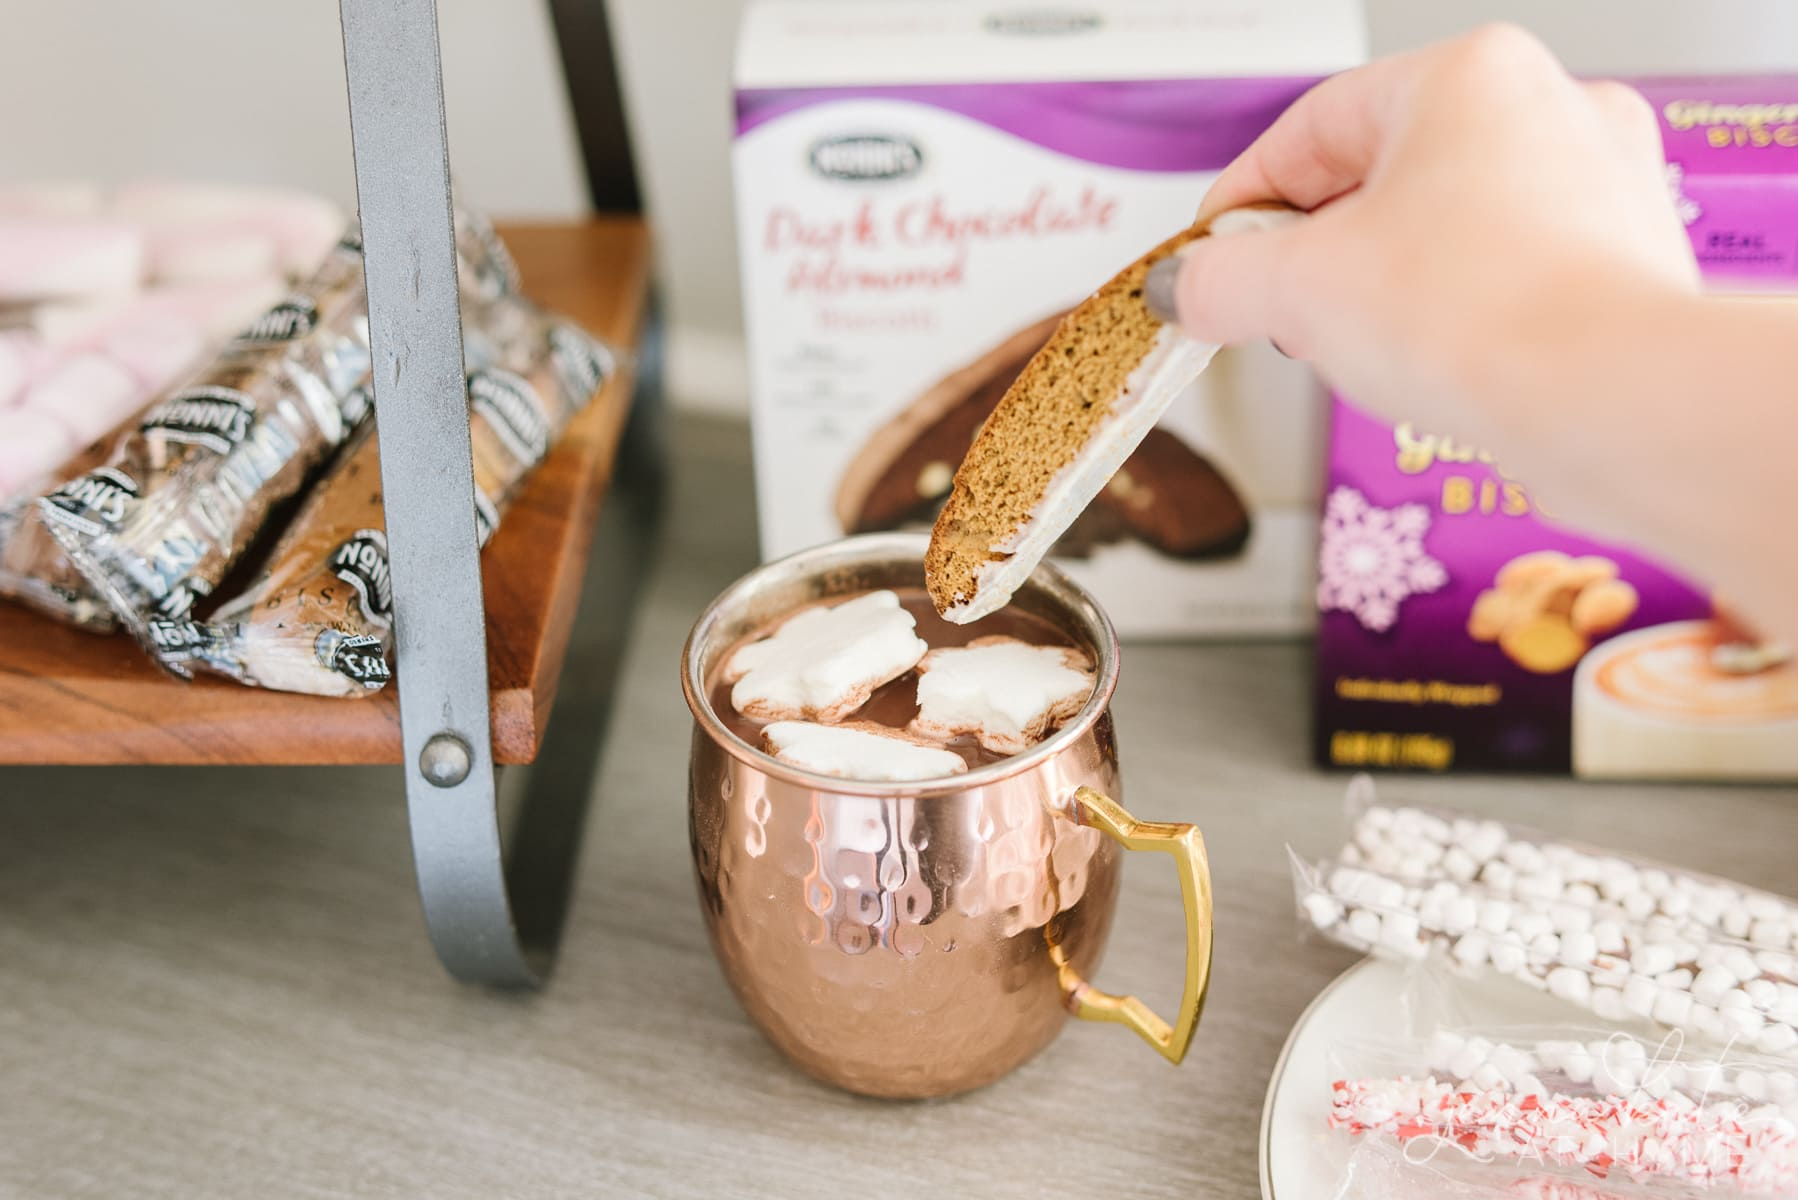 Dipping a gingerbread biscotti into a mug of hot cocoa